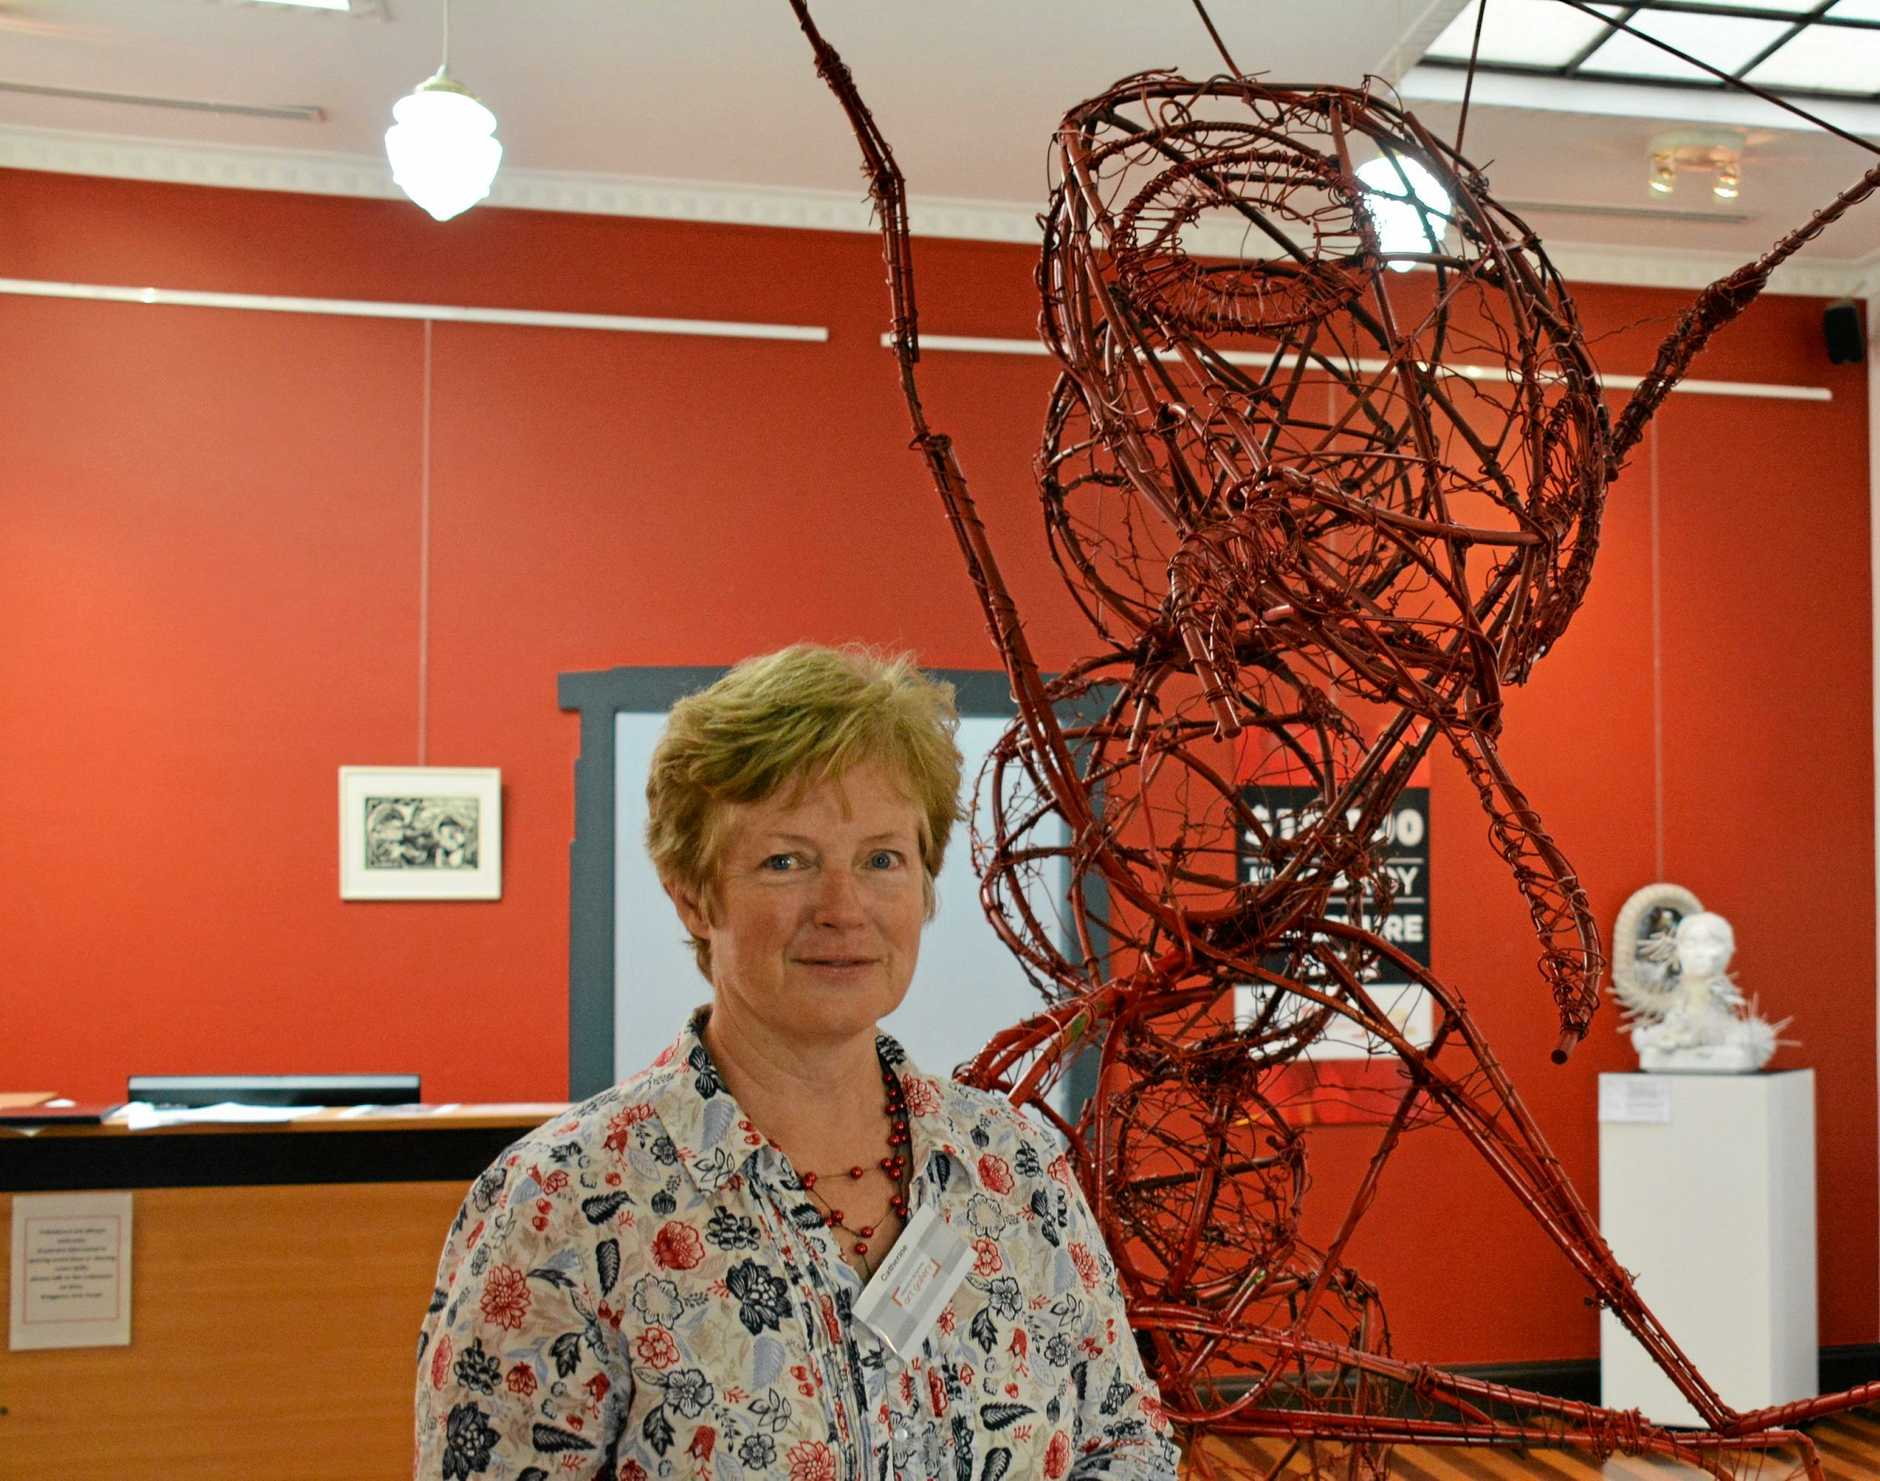 Kingaroy Regional Art Gallery art director Catherine Woodham with one of the sculpture entries.